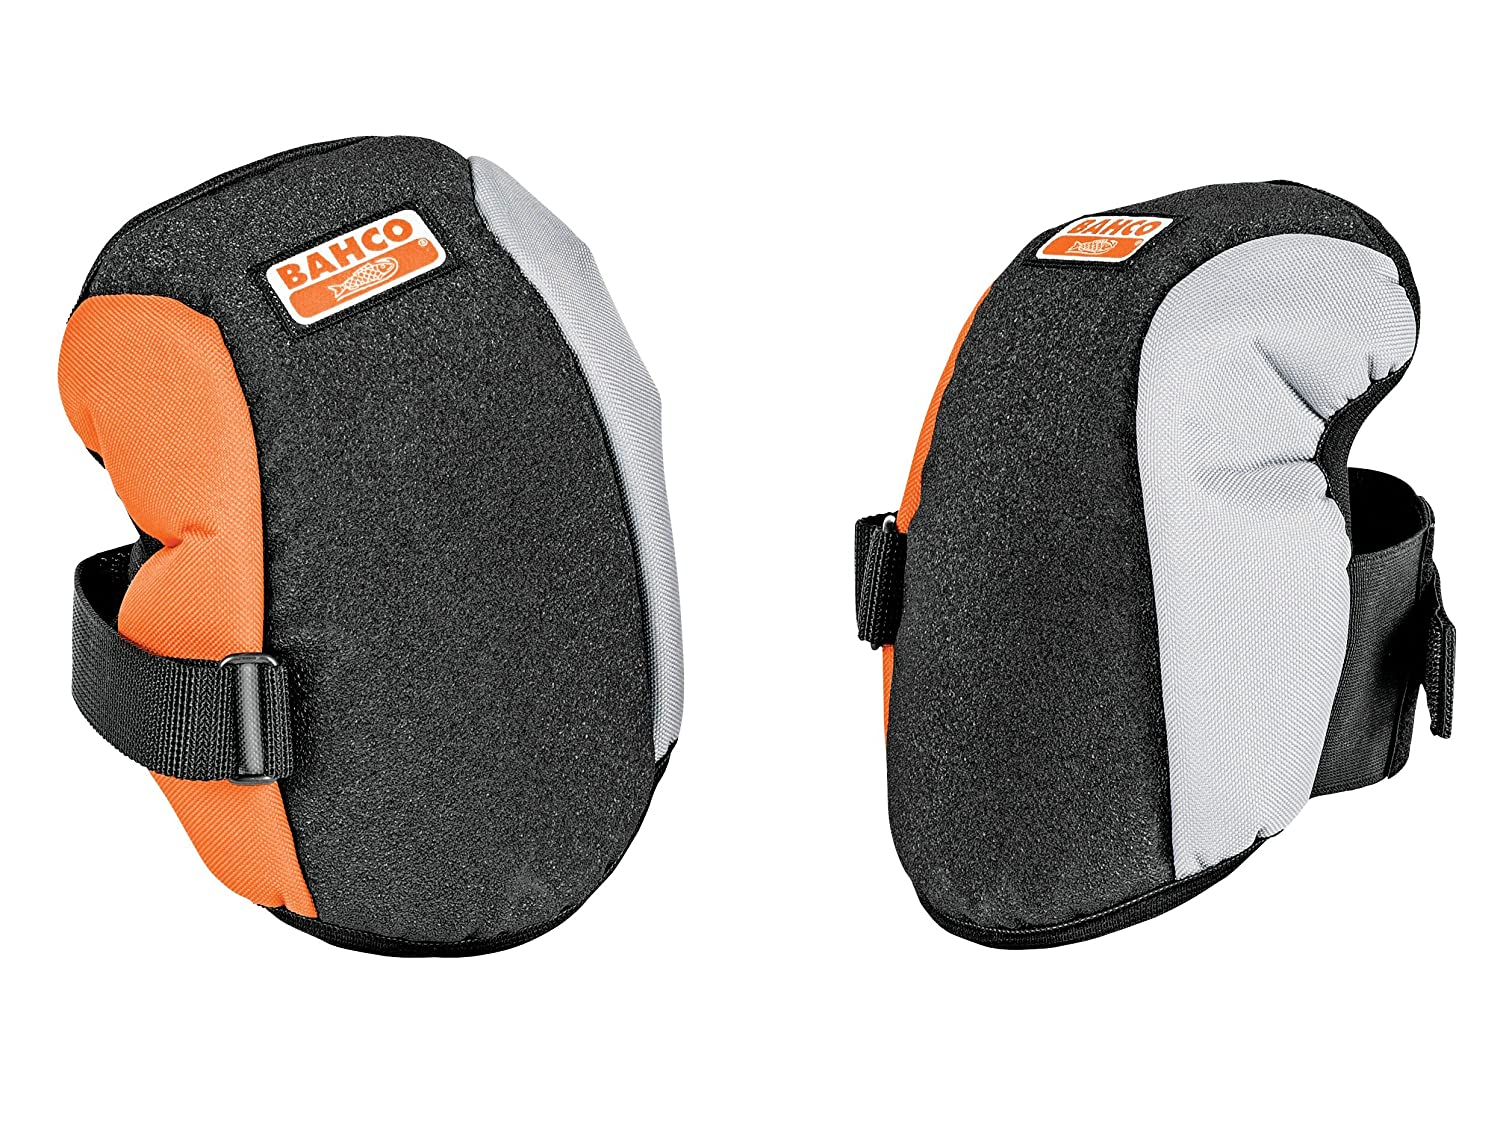 Bahco 4750-KP-1 Protections Genoux